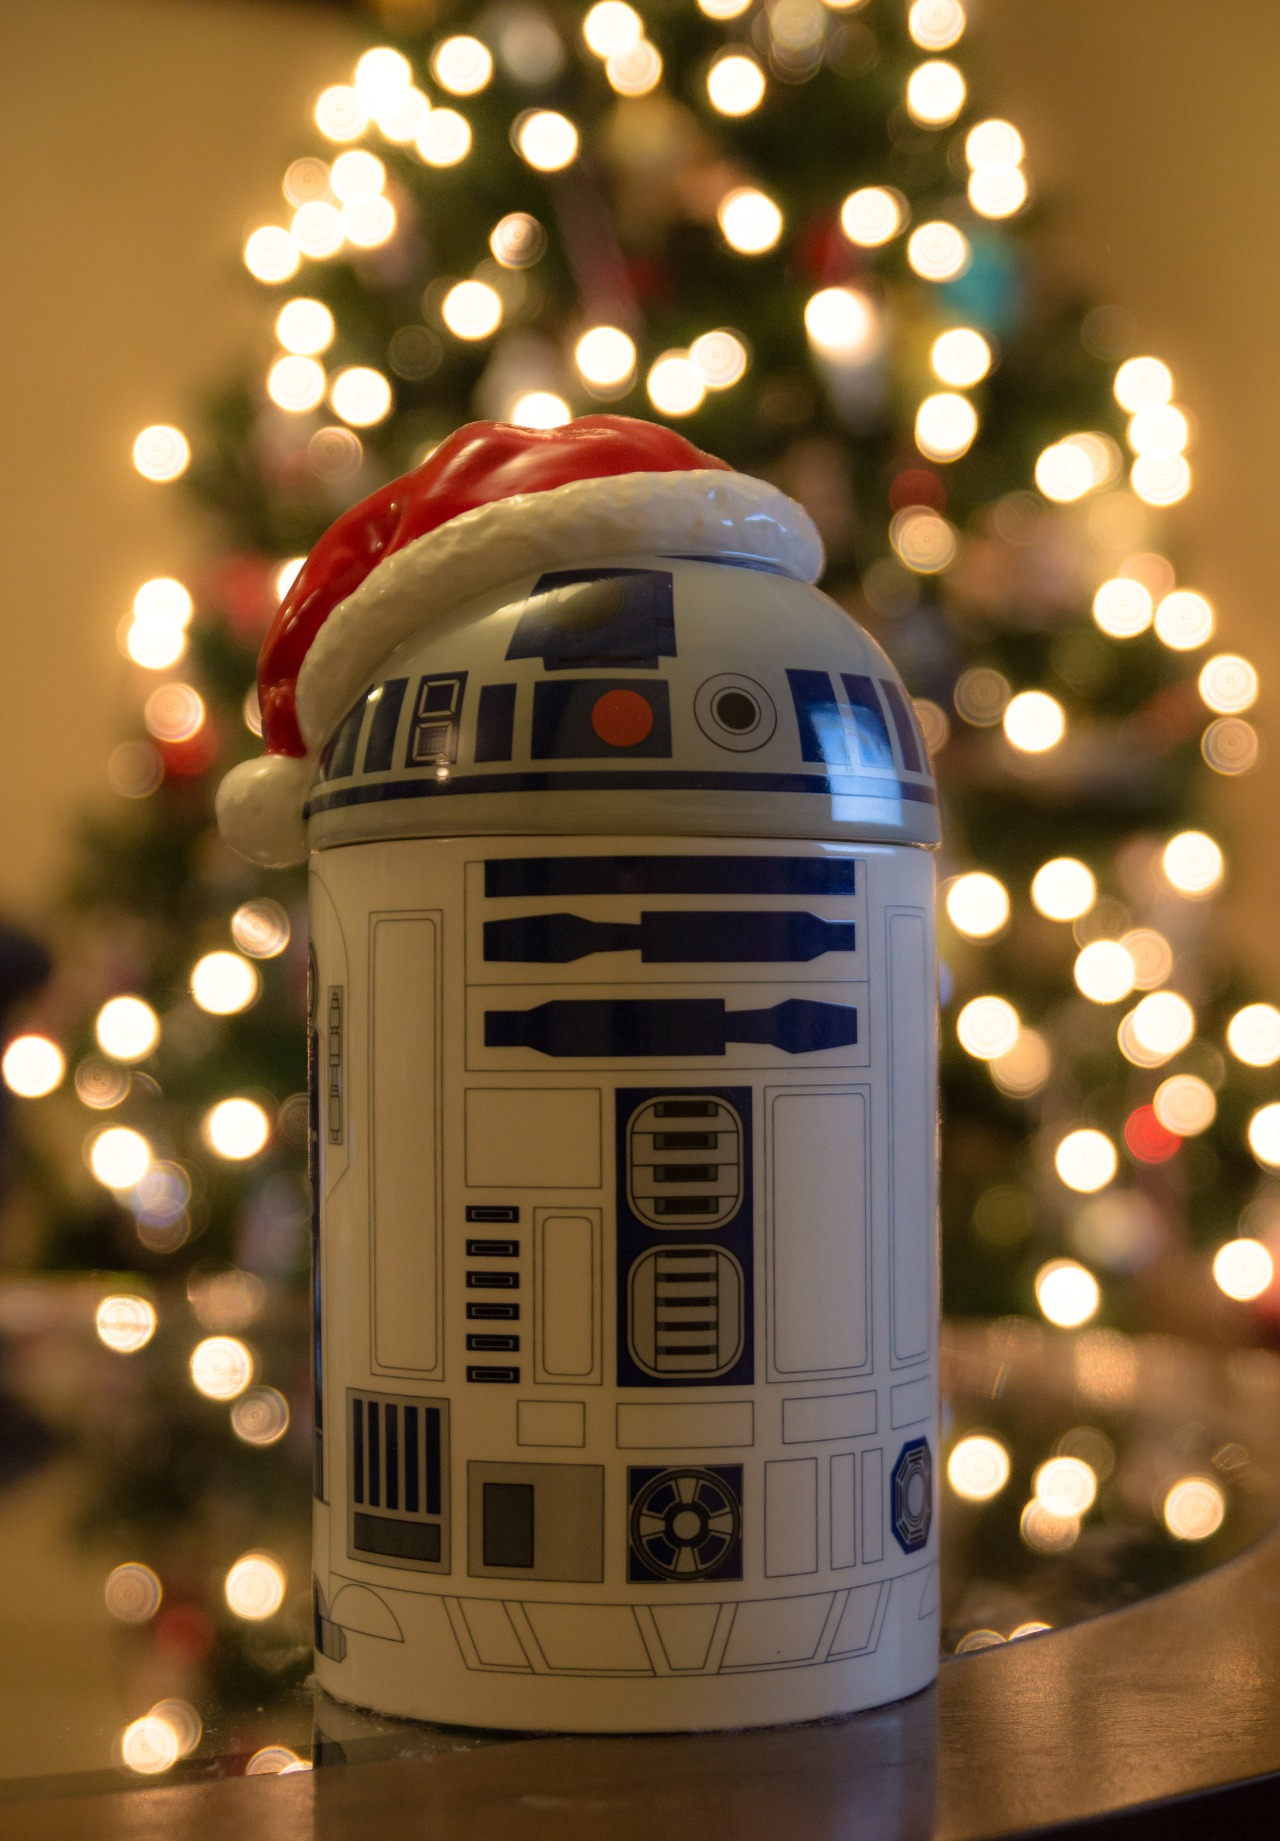 Star Wars R2-D2 Christmas cheer!    -MB